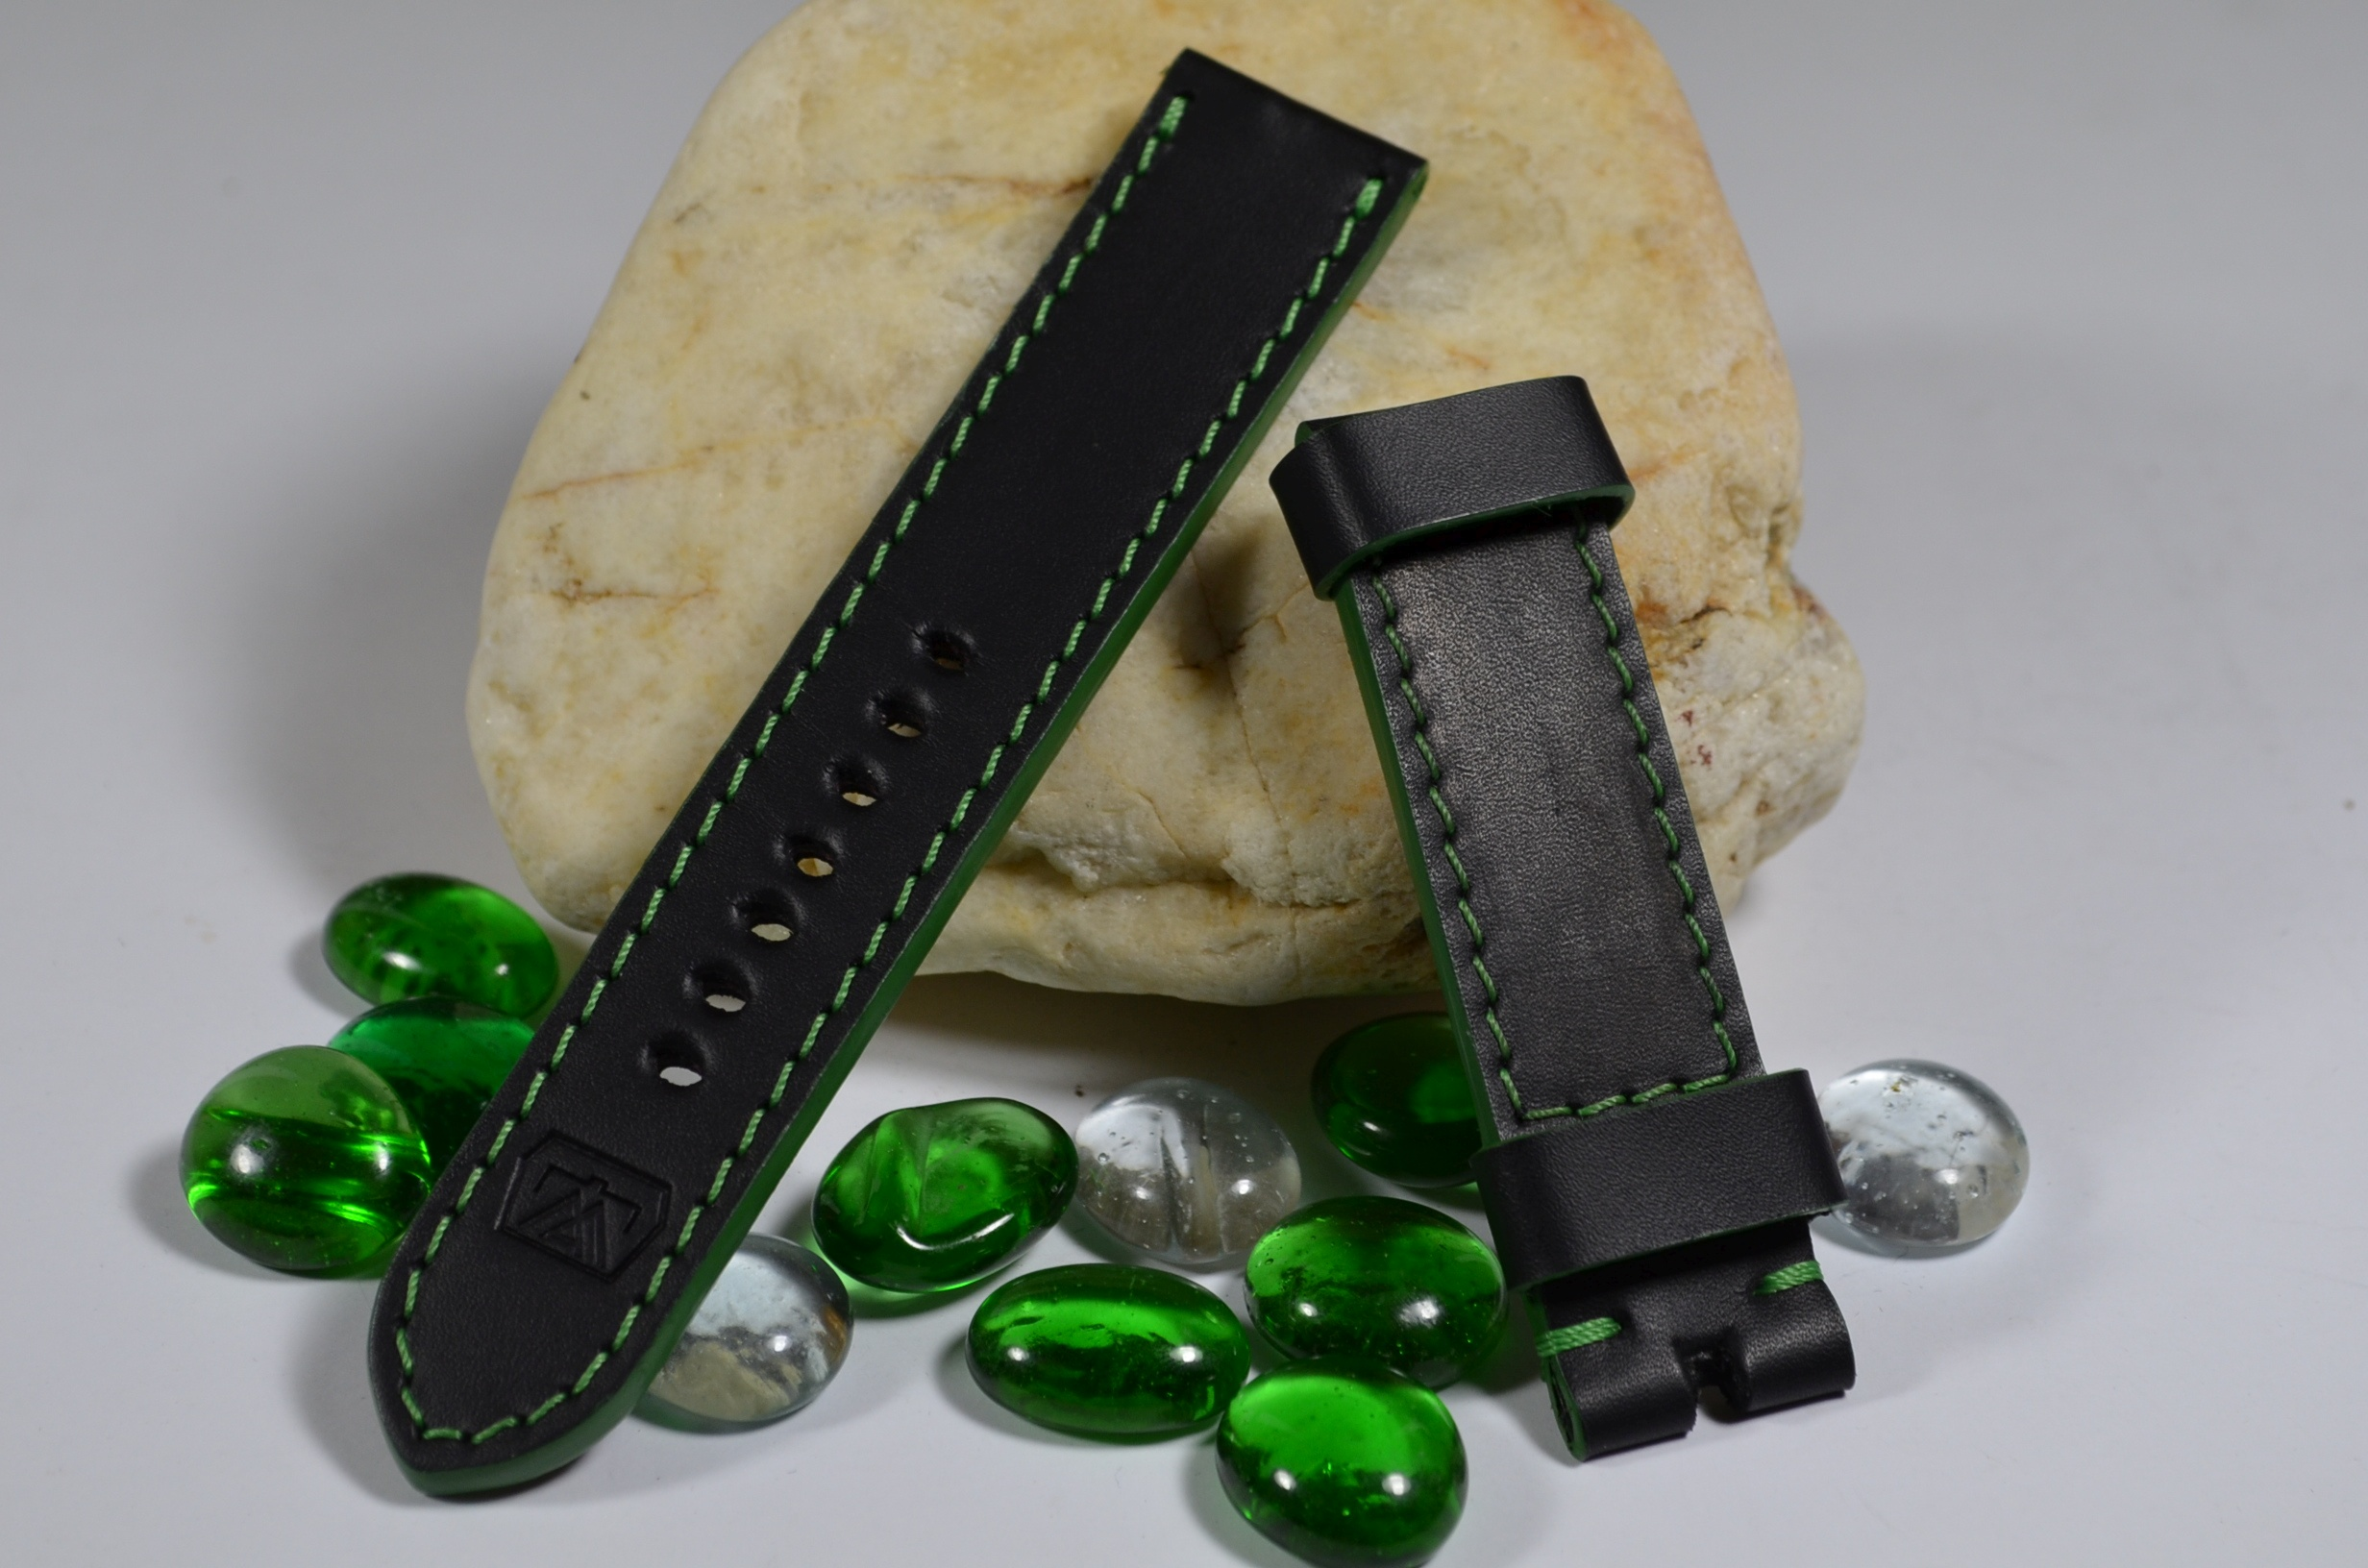 GREEN is one of our hand crafted watch straps. Available in green color, 3.5 - 4 mm thick.